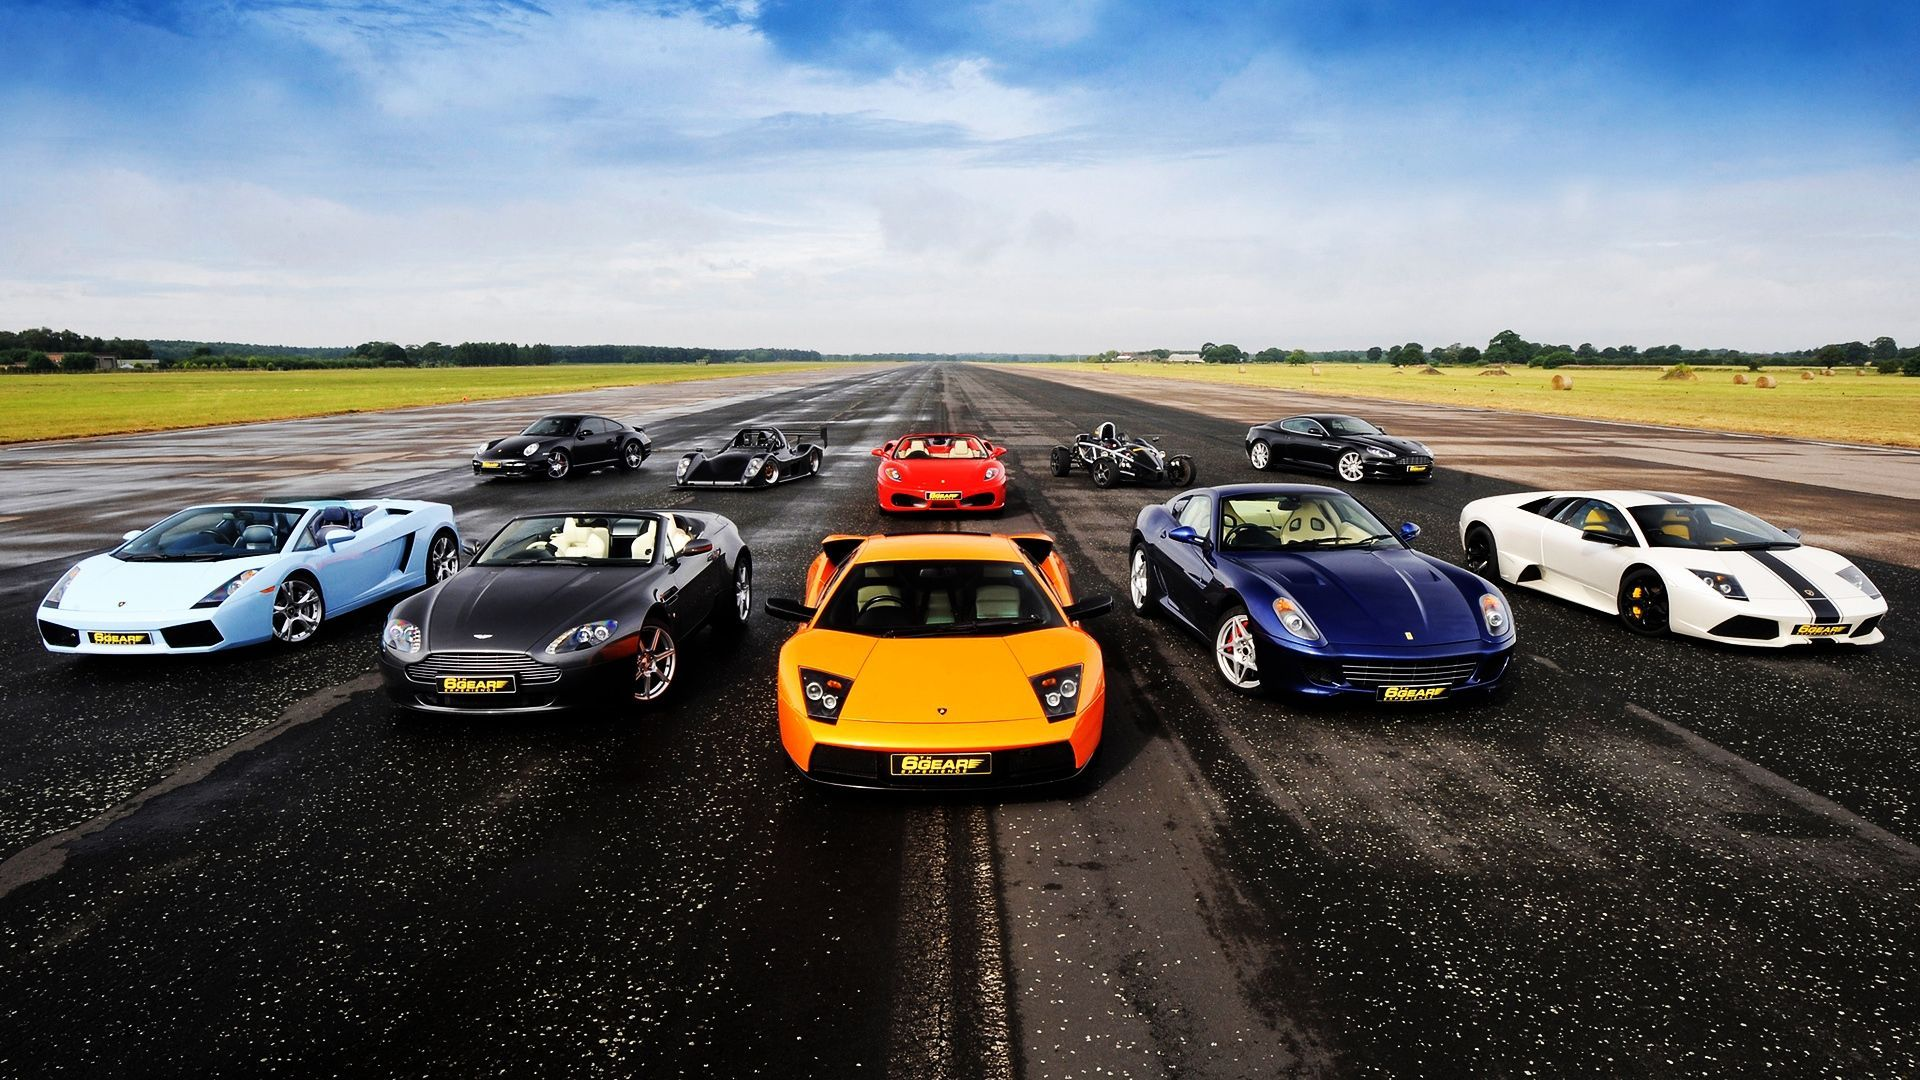 Hd wallpapers of cars - Hd Cars Wallpapers P Wallpaper 1920 1080 Hd Wallpapers Of Cars 59 Wallpapers